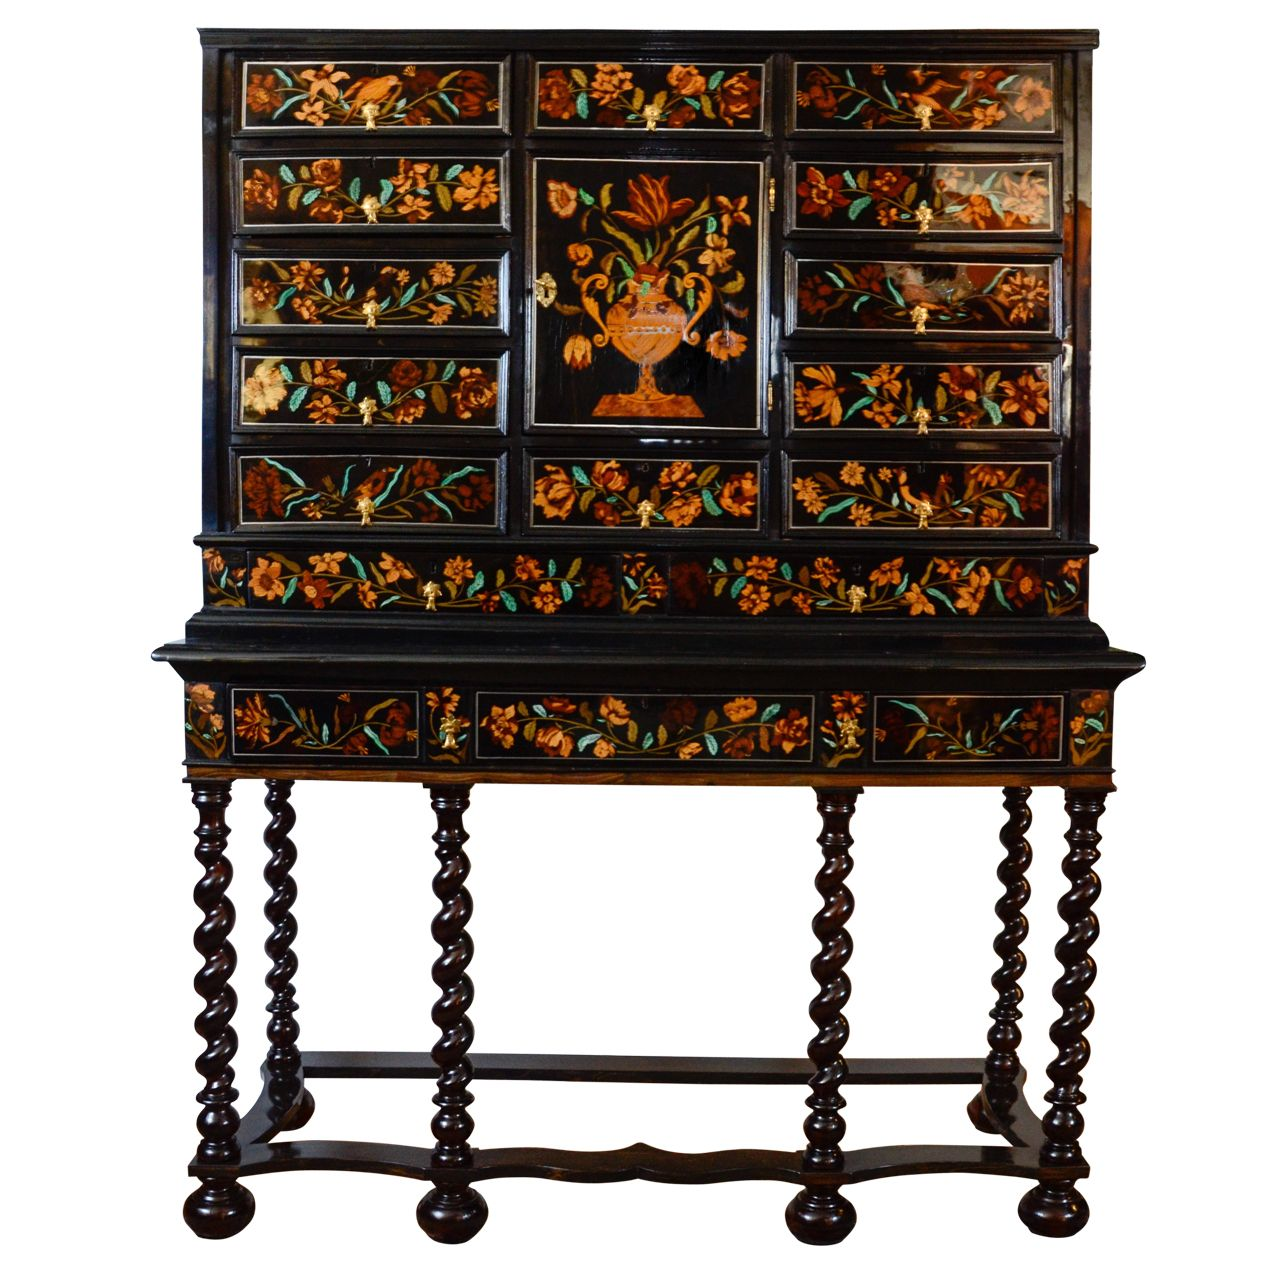 Muebles Chinos Antiguos Louis Xiv Marquetry Cabinet On Stand 17th Century